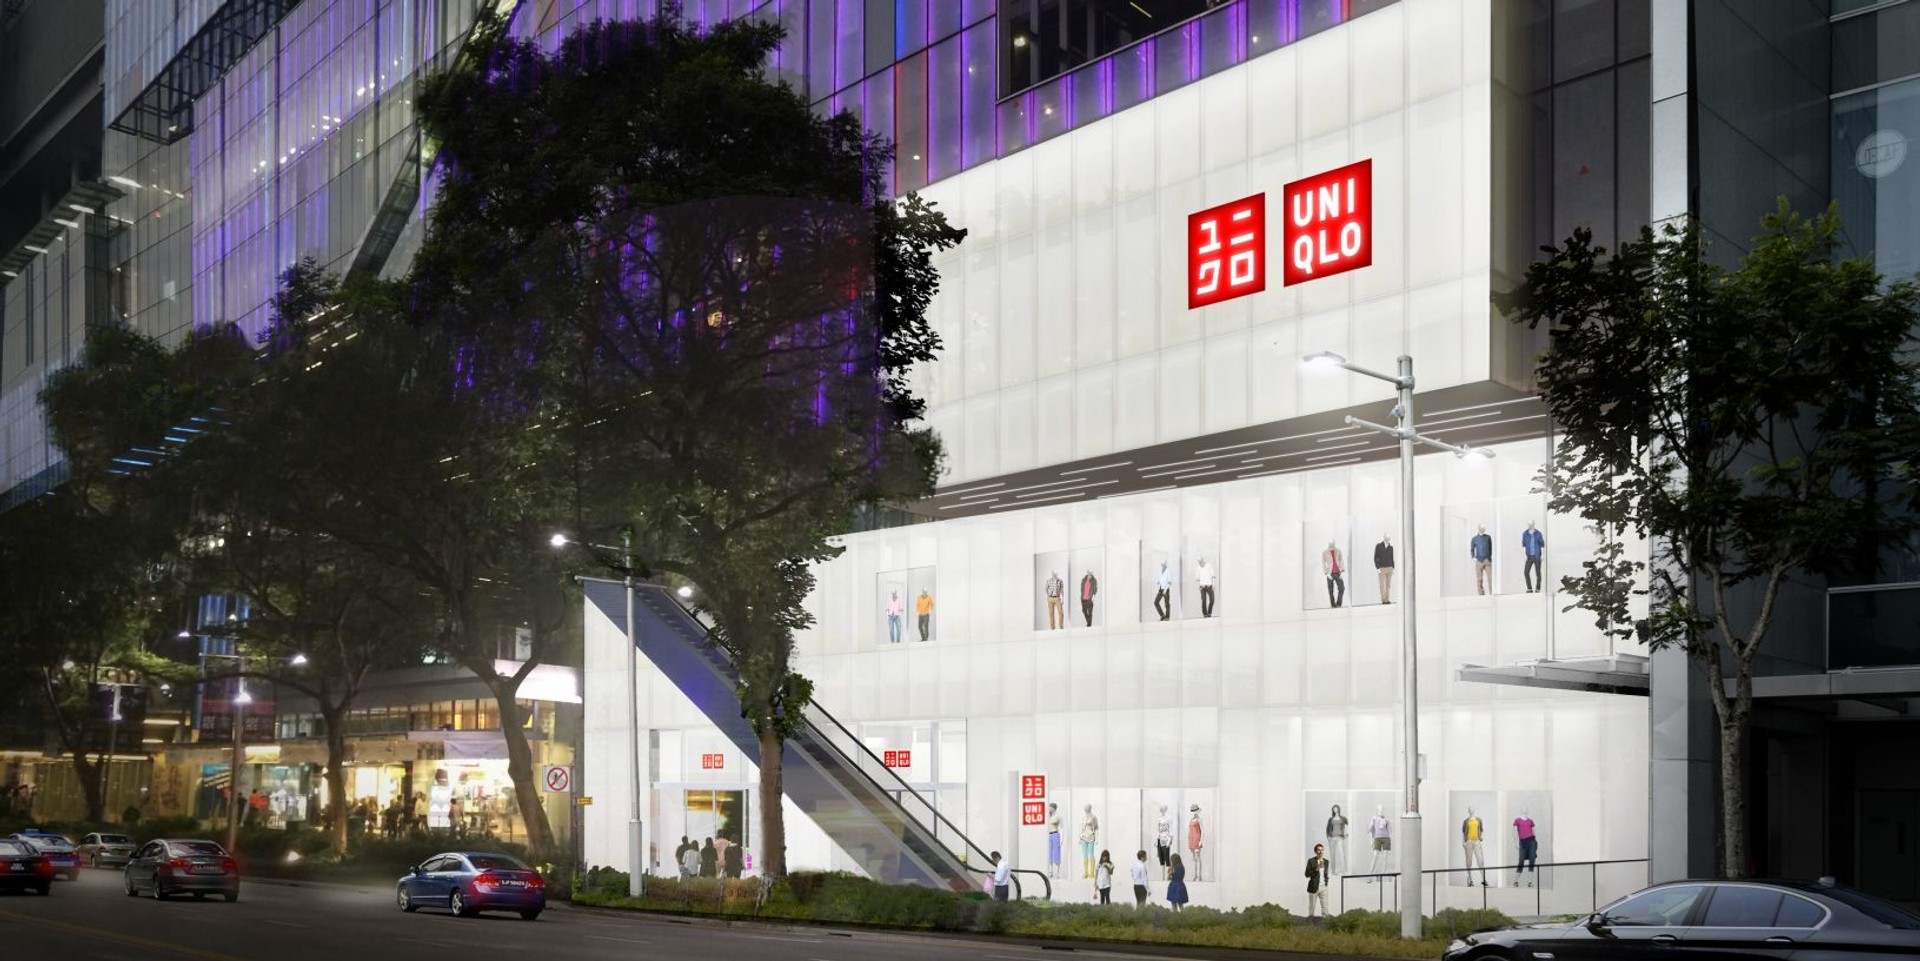 Uniqlo's new flagship store will feature original music curated by Syndicate